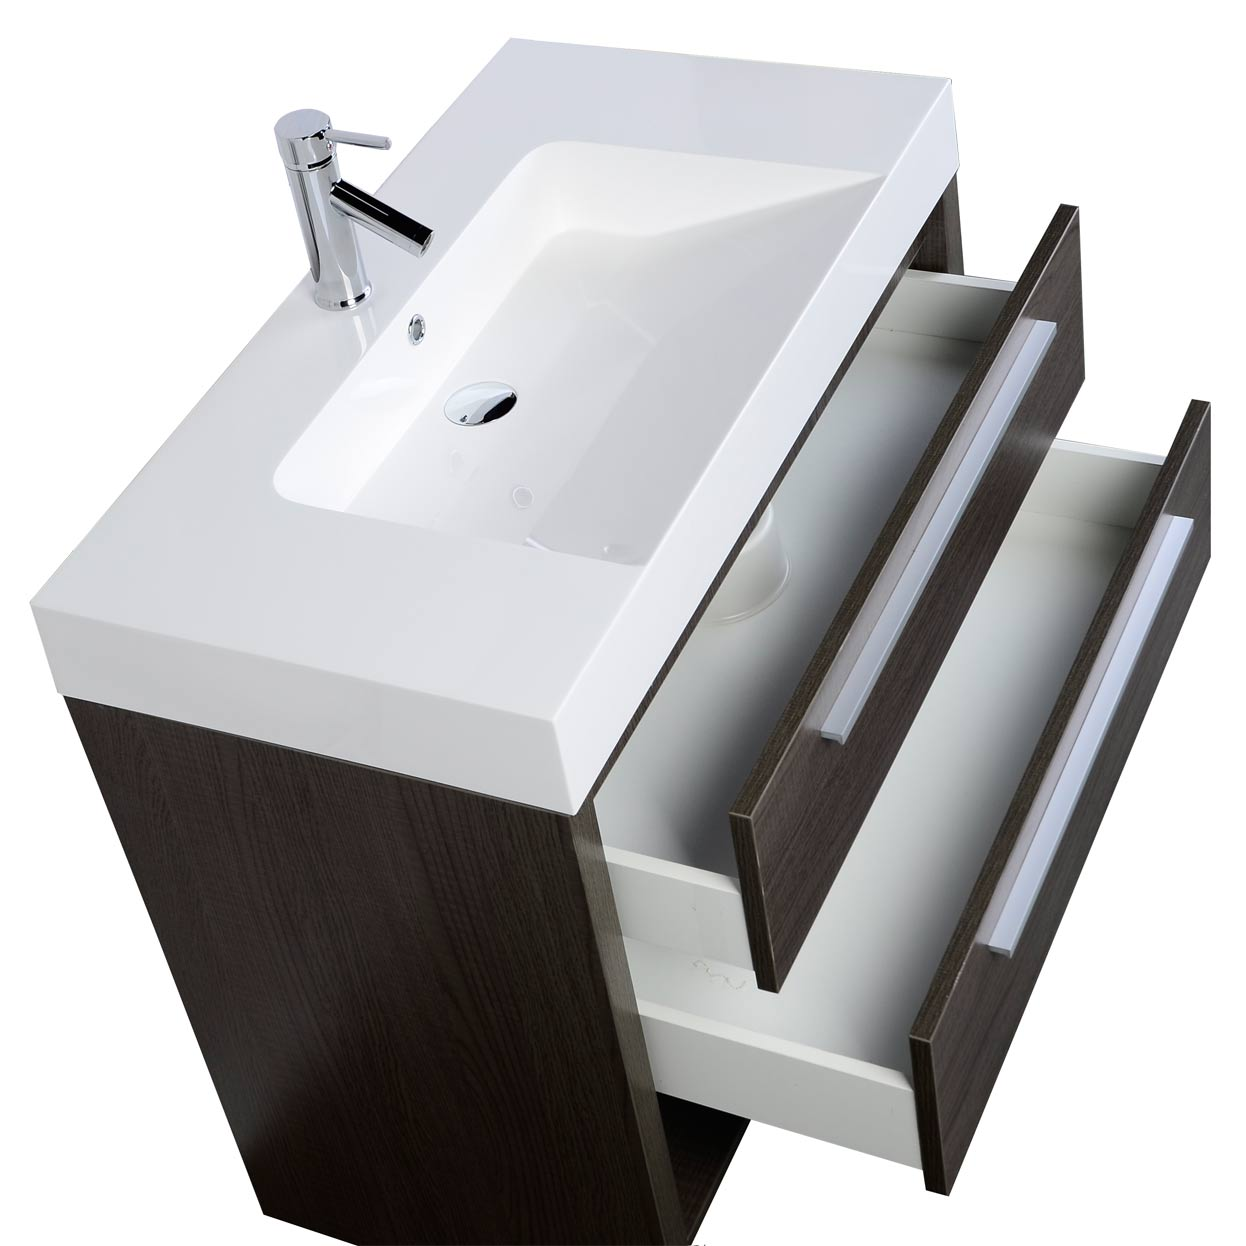 Mula 35 5 Modern Bathroom Vanity Oak Rs L900 Oak On